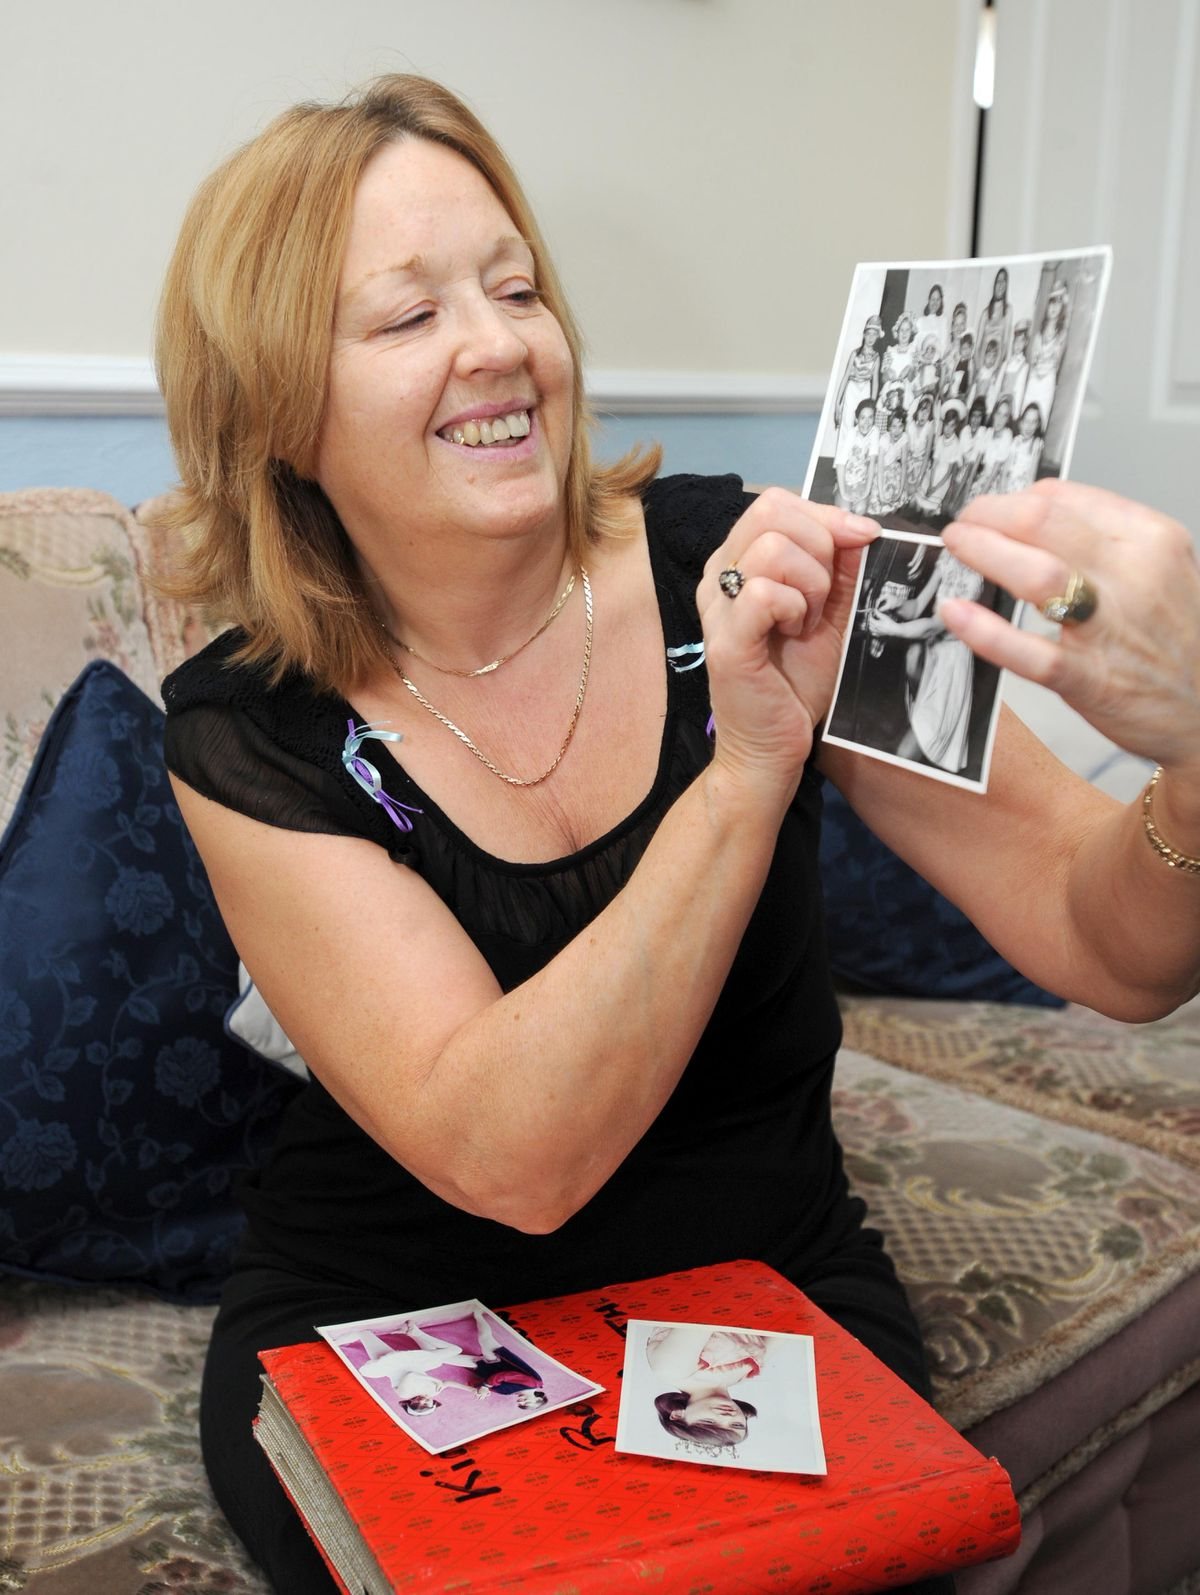 Denise takes a look at old photos